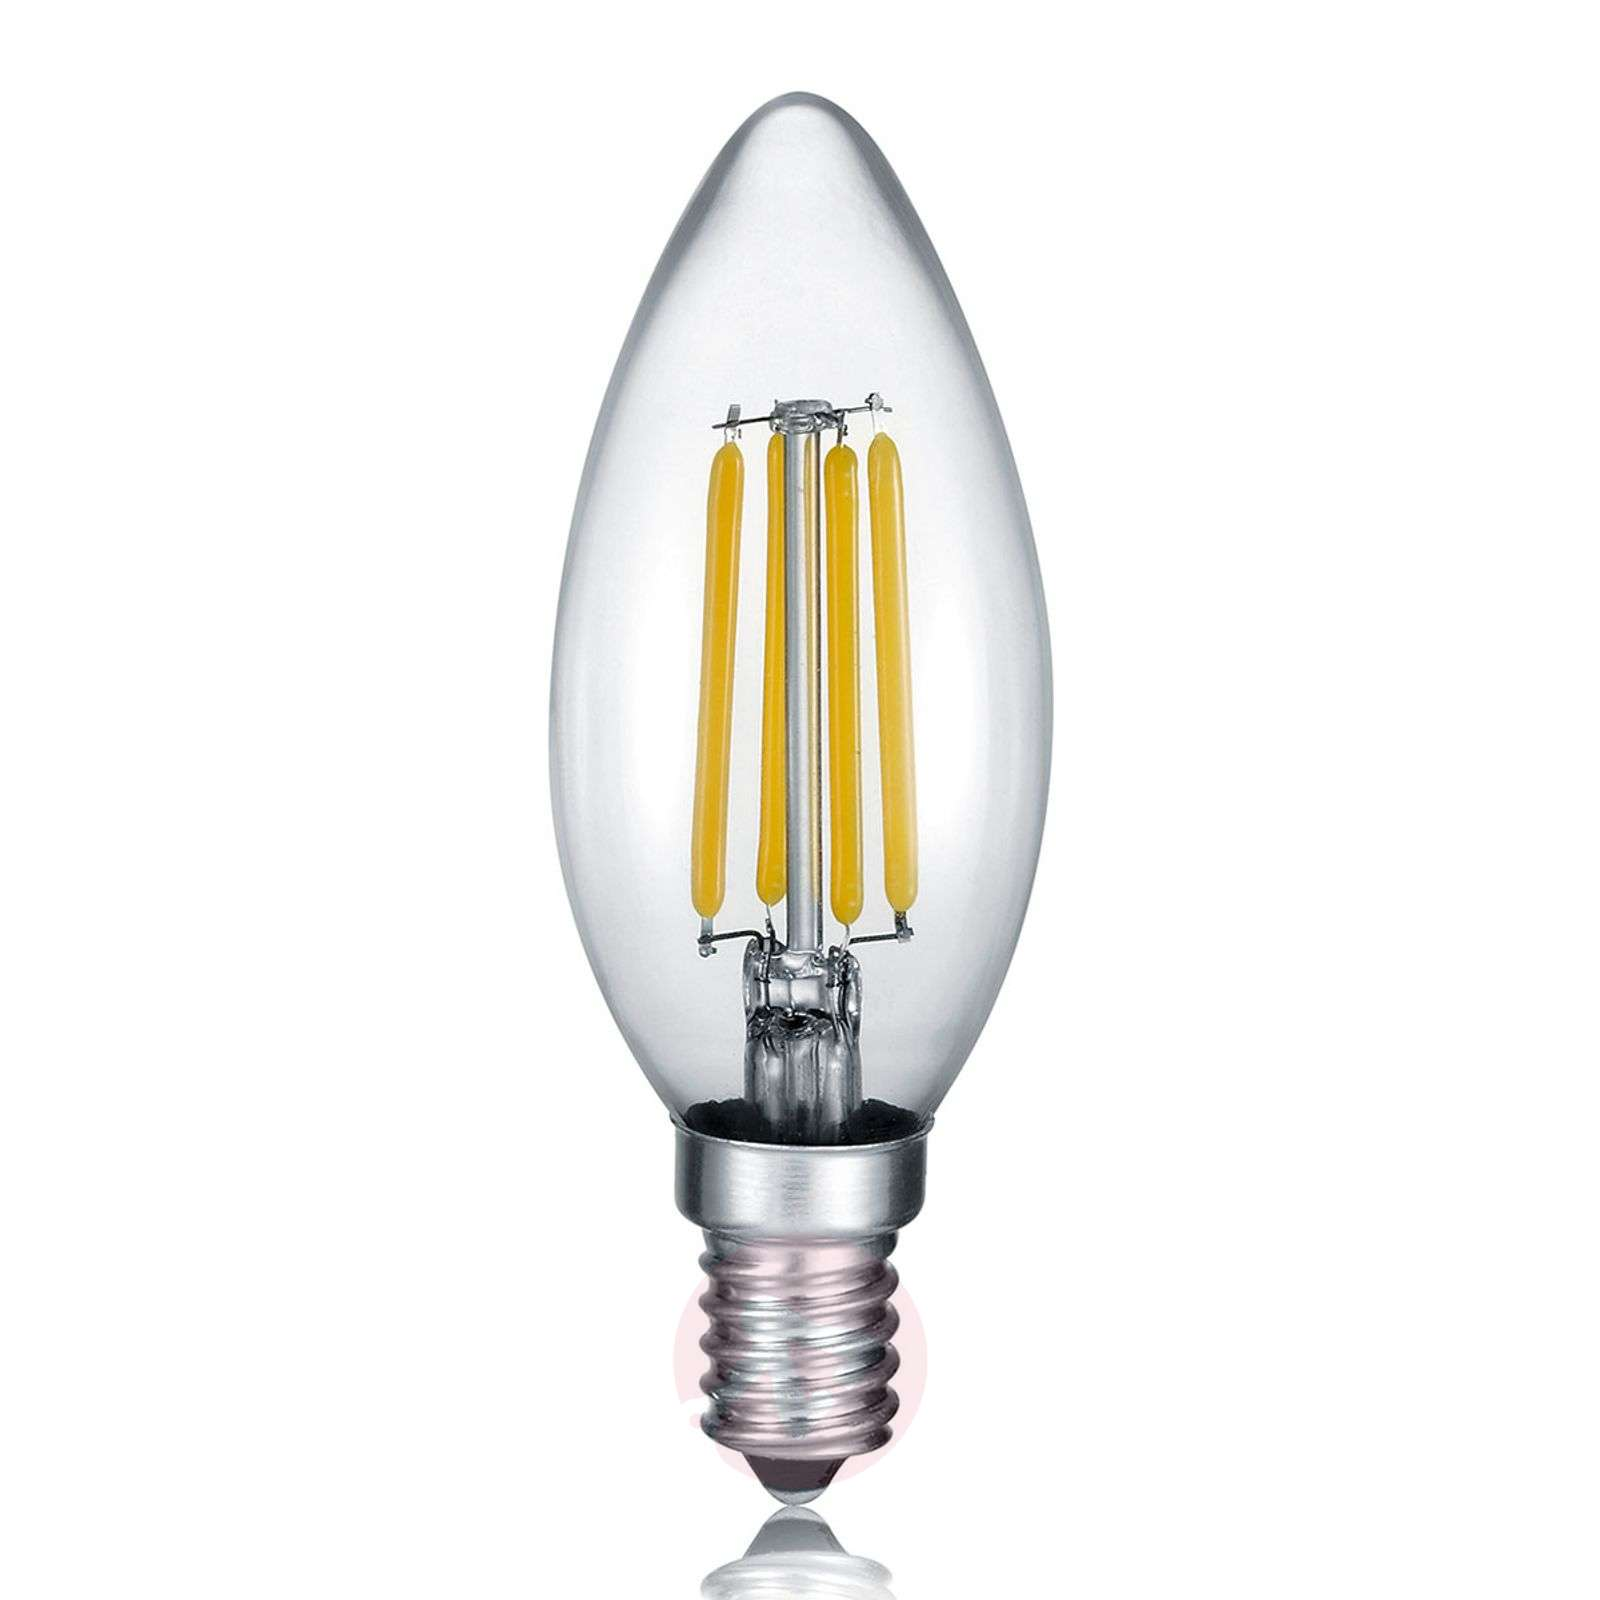 Ampoule flamme LED E14 4W, 2700K Switch Dimmer-9004819-01